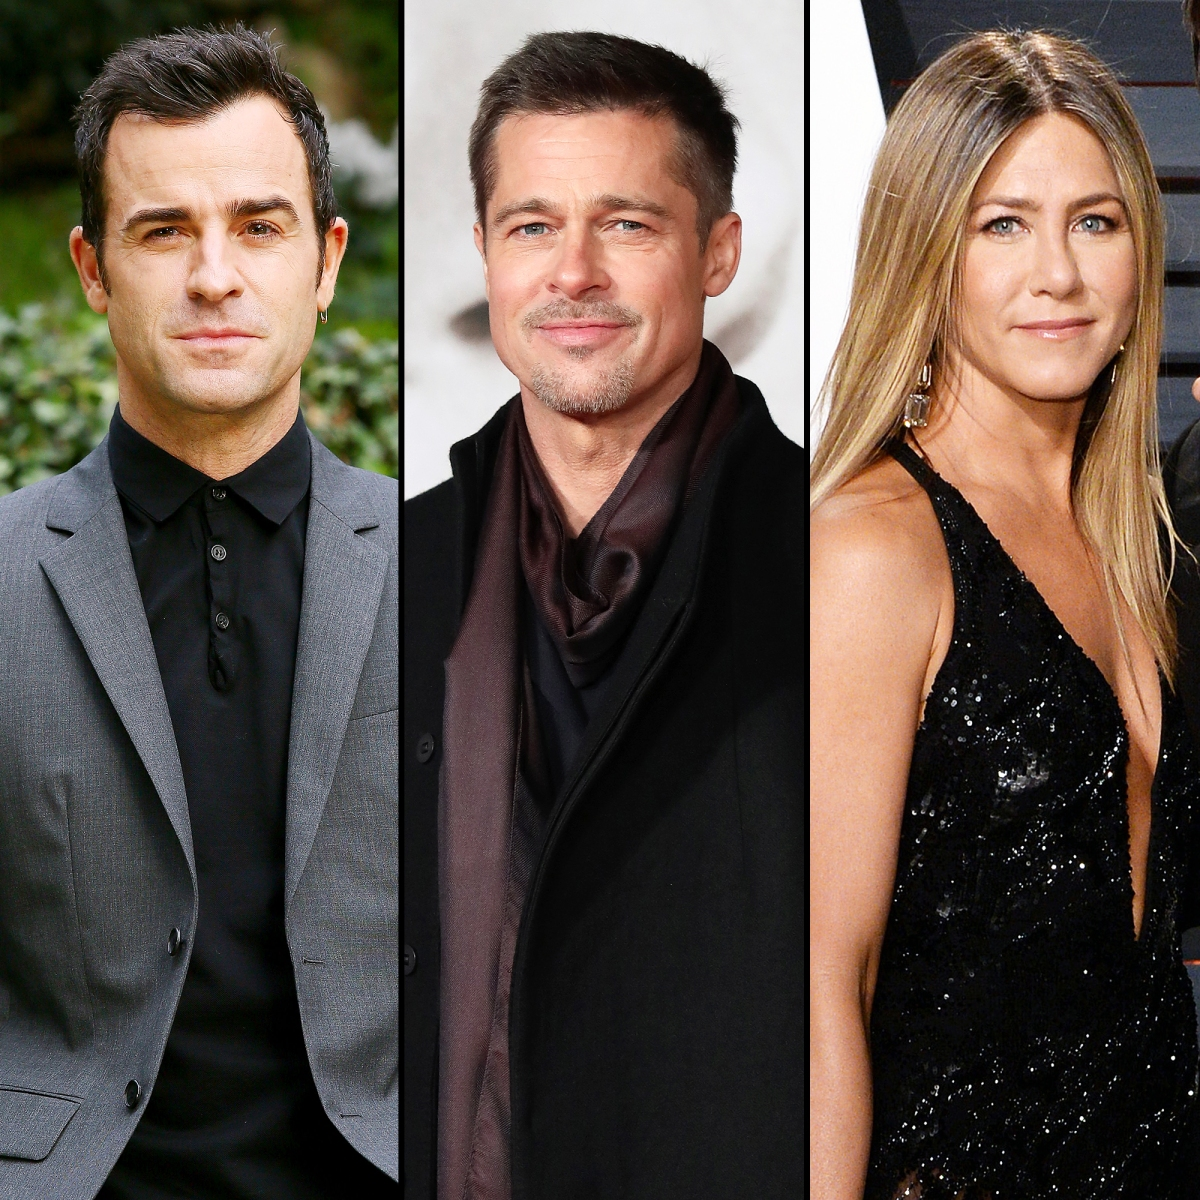 Brad Pitt And Jennifer Aniston Relationship Timeline